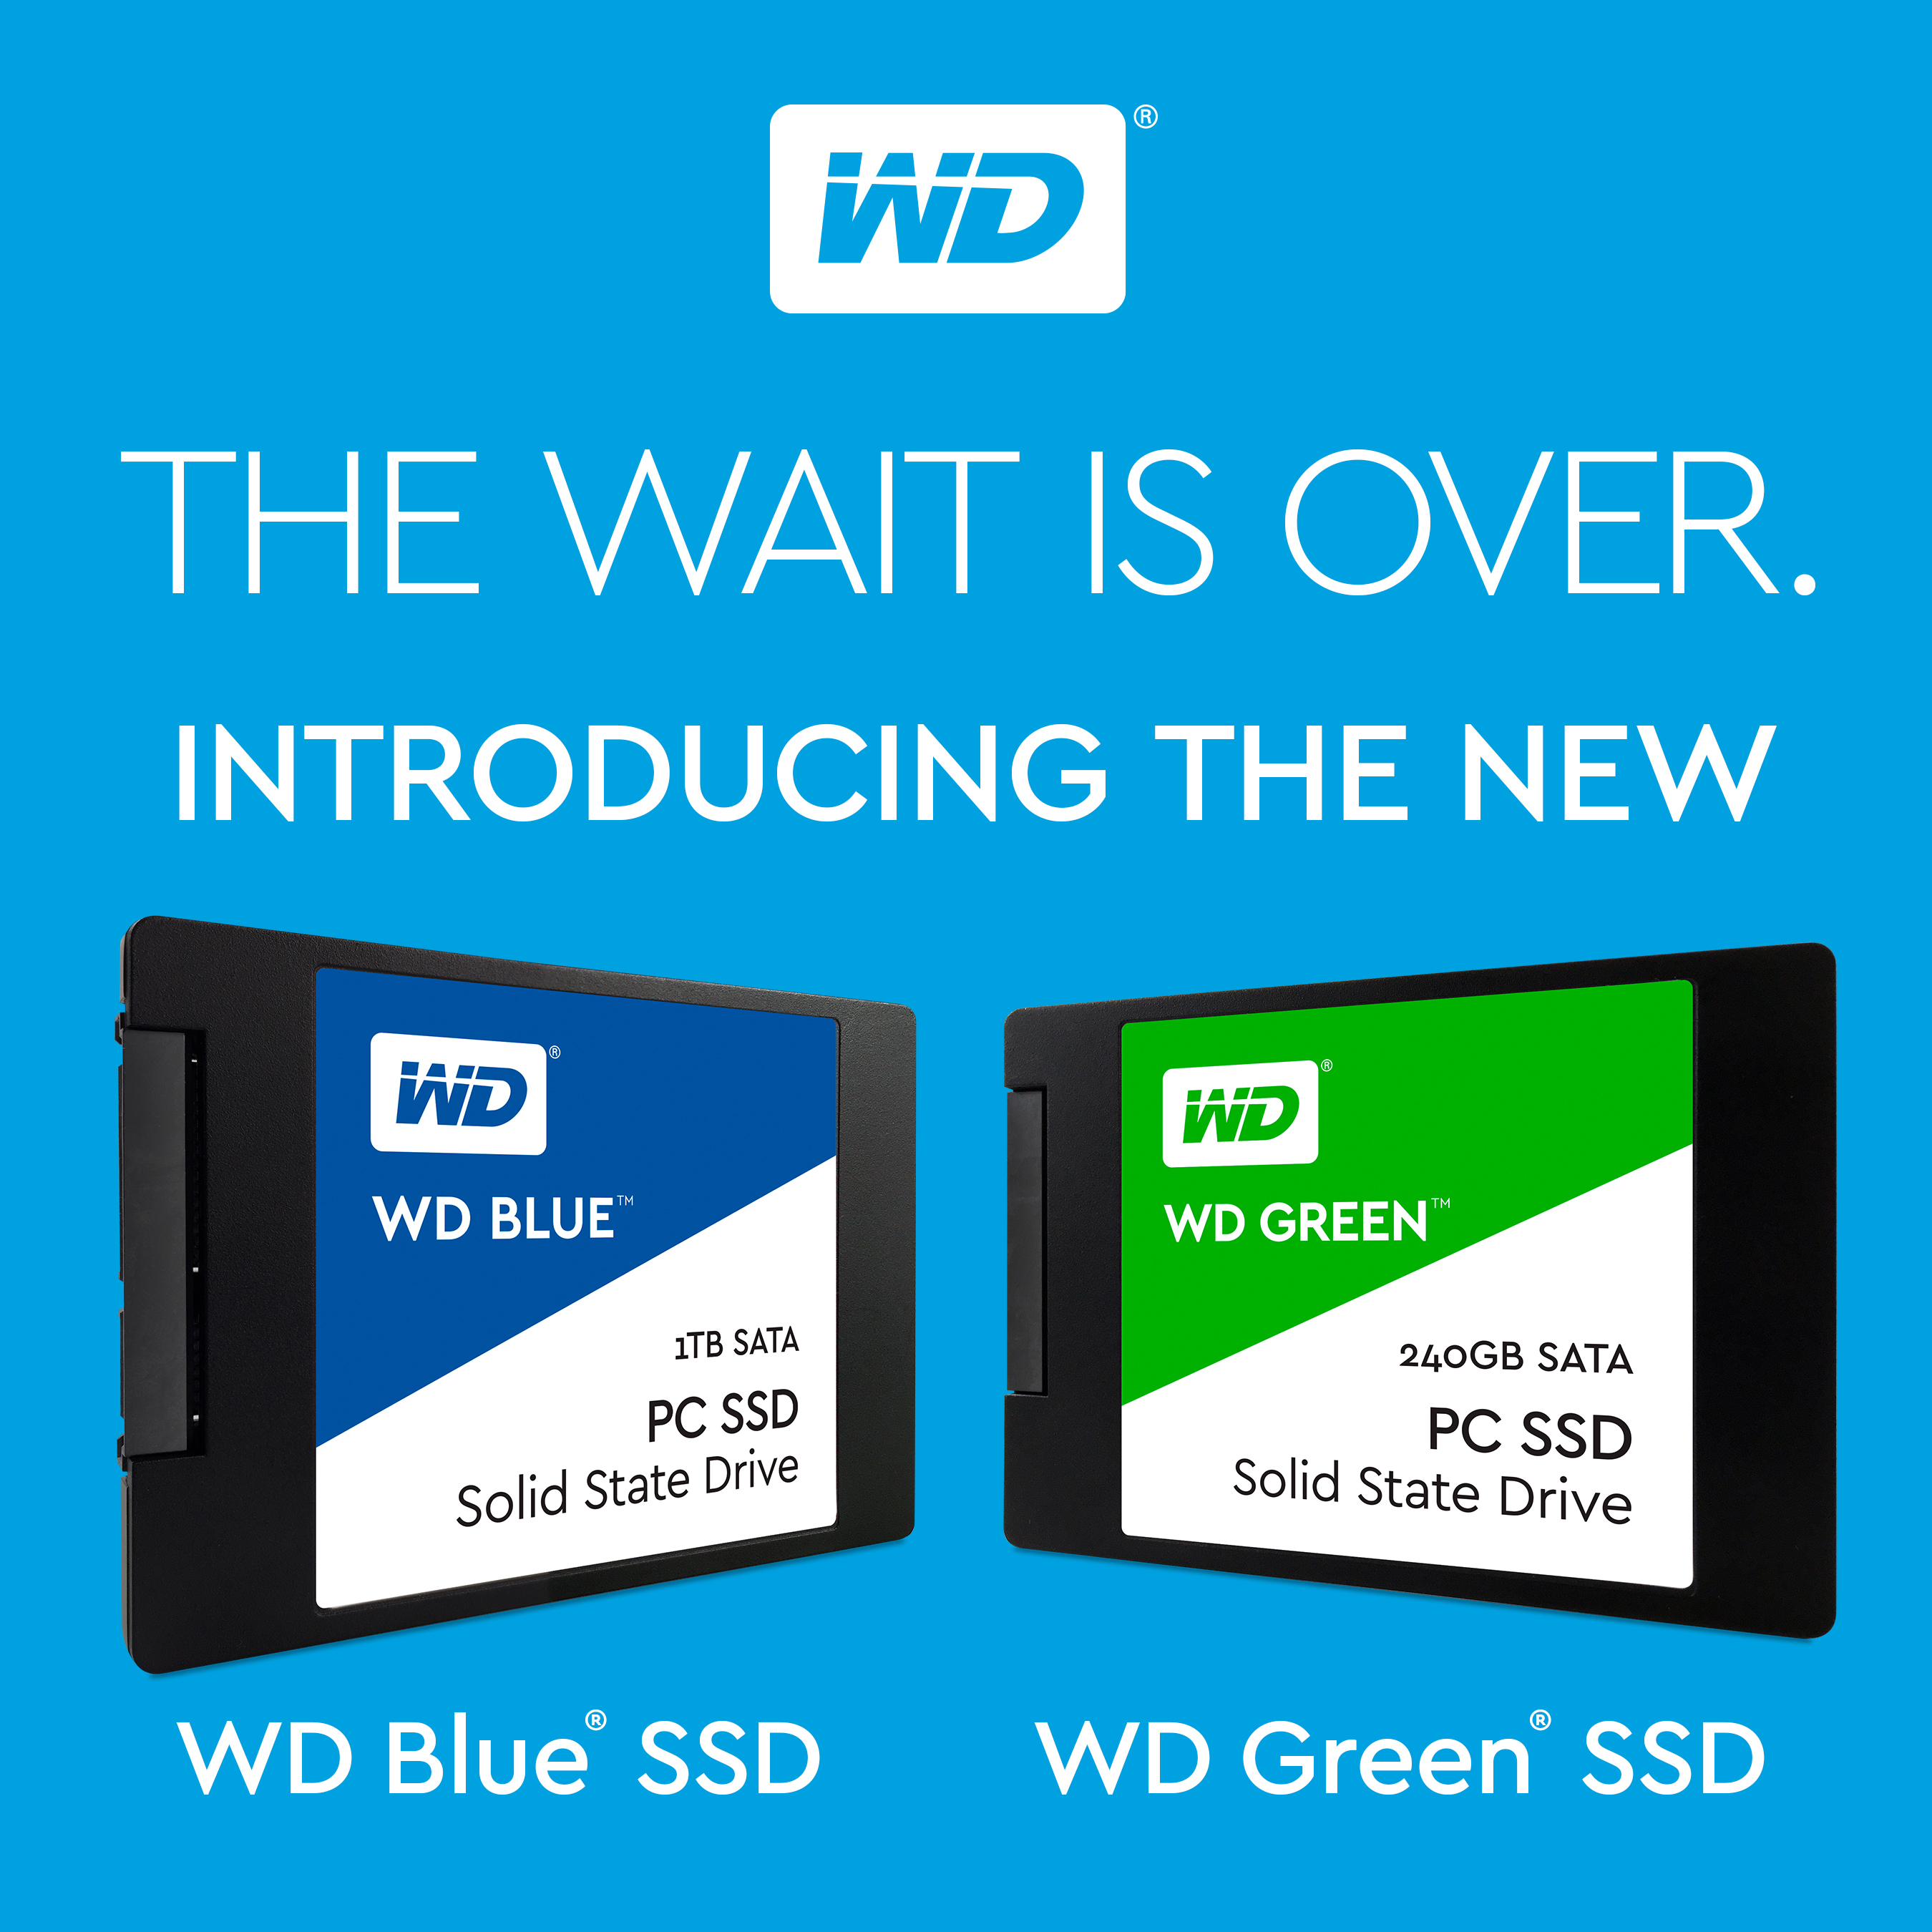 Western Digital Finally Introduces Its Ssd Lineup Calls It The Wd Hardisk Internal Pc 500gb Sata Blue Latest Storage Solutions Start From 79 Based Available For Those Who Are On A Budget